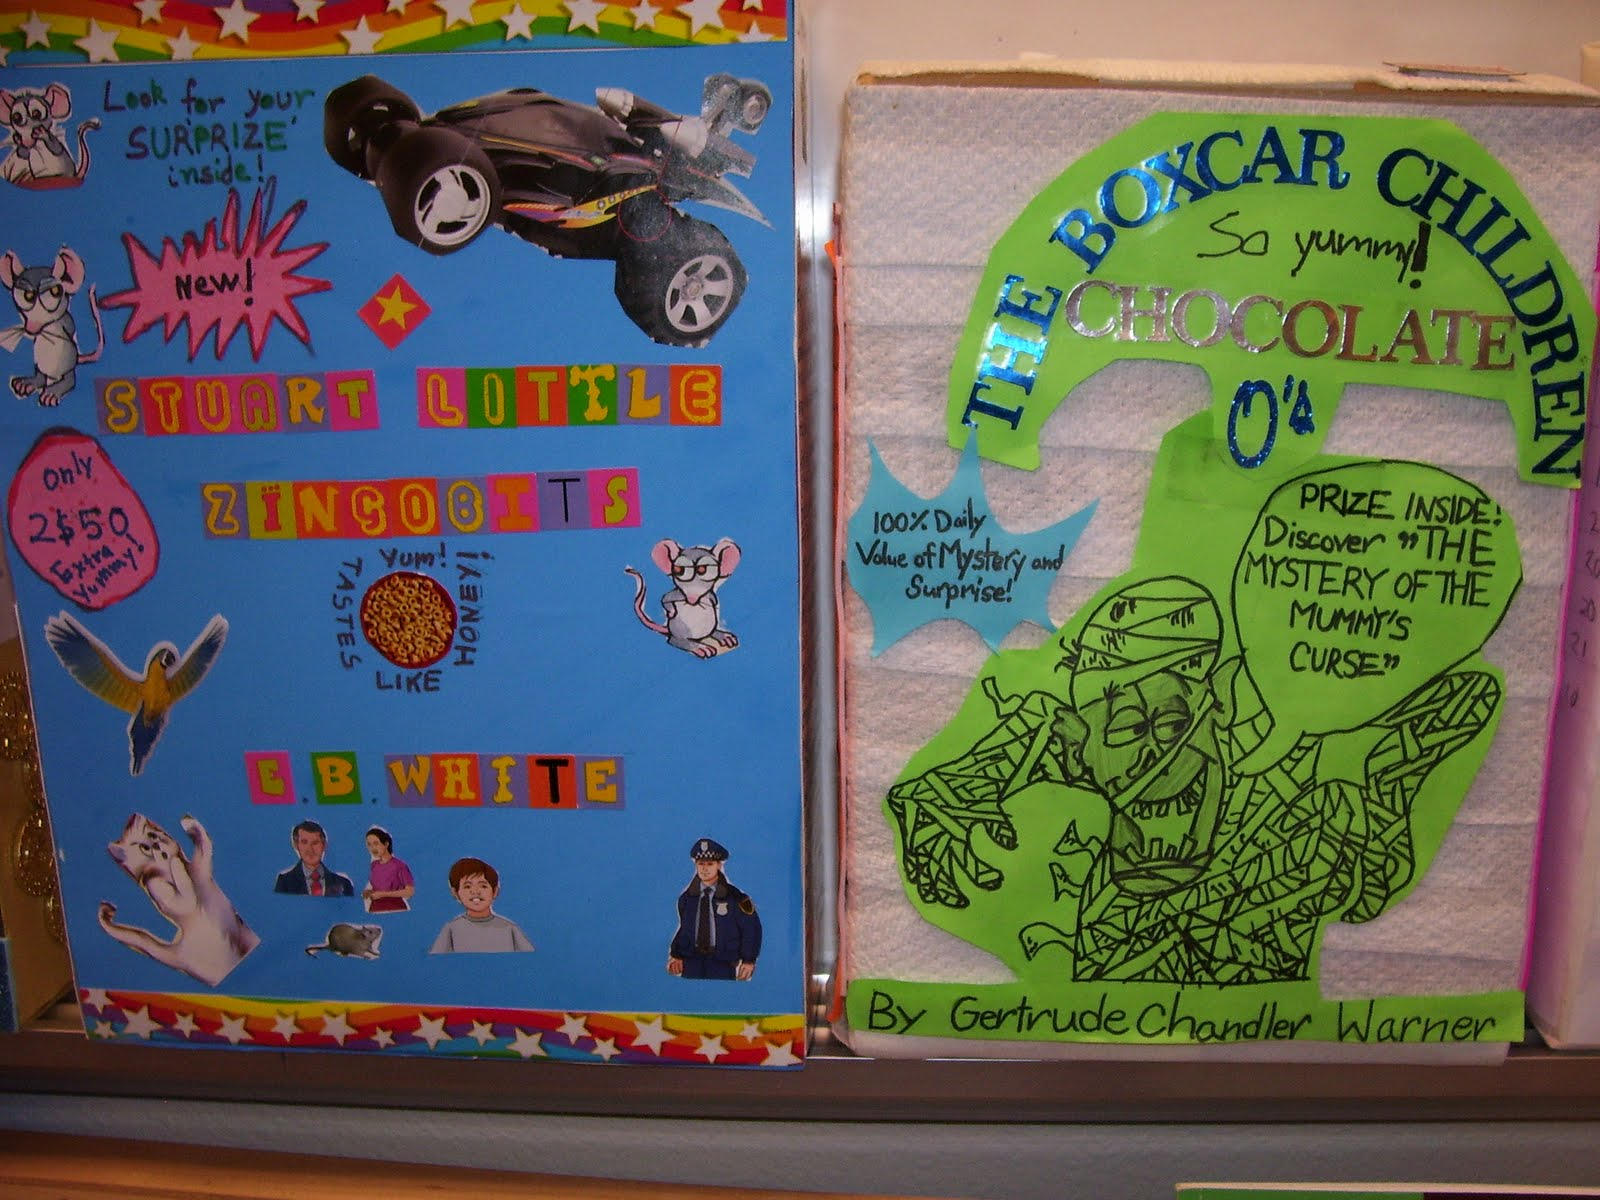 Cereal box book report of Charlie and the Chocolate Factory: 4th Grade book report